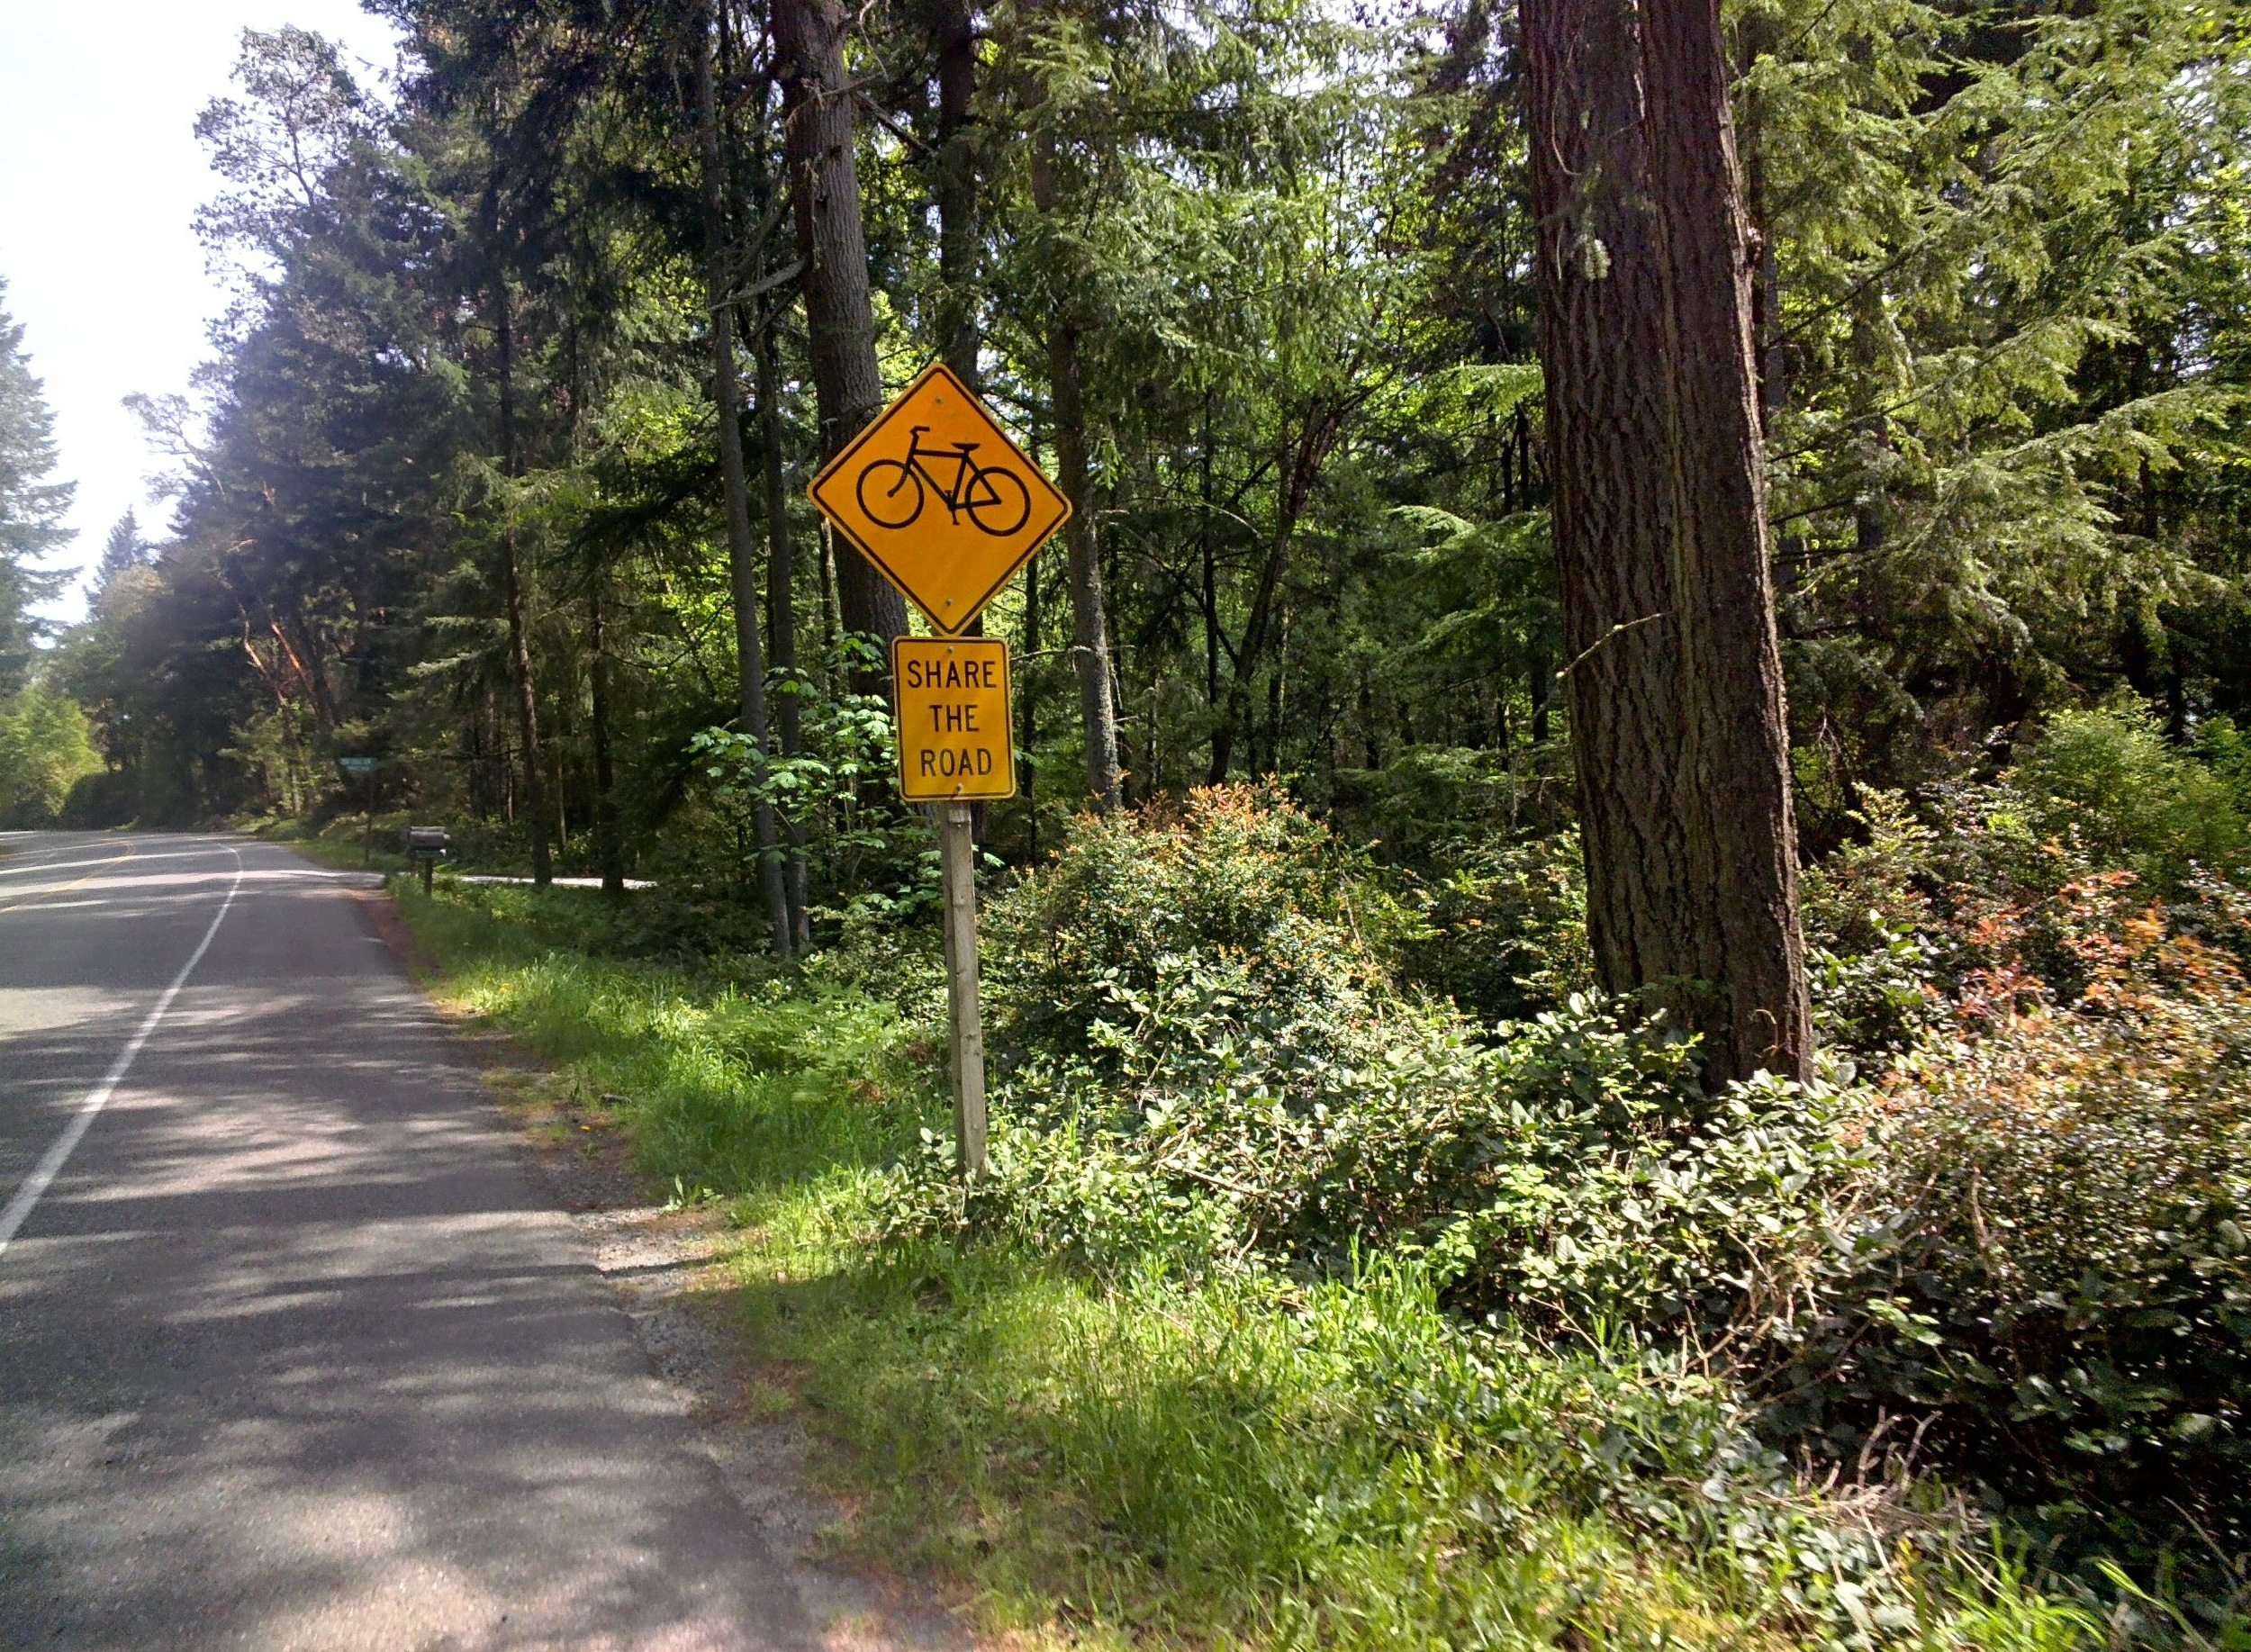 drivers actually heed the sign's advice on Vashon